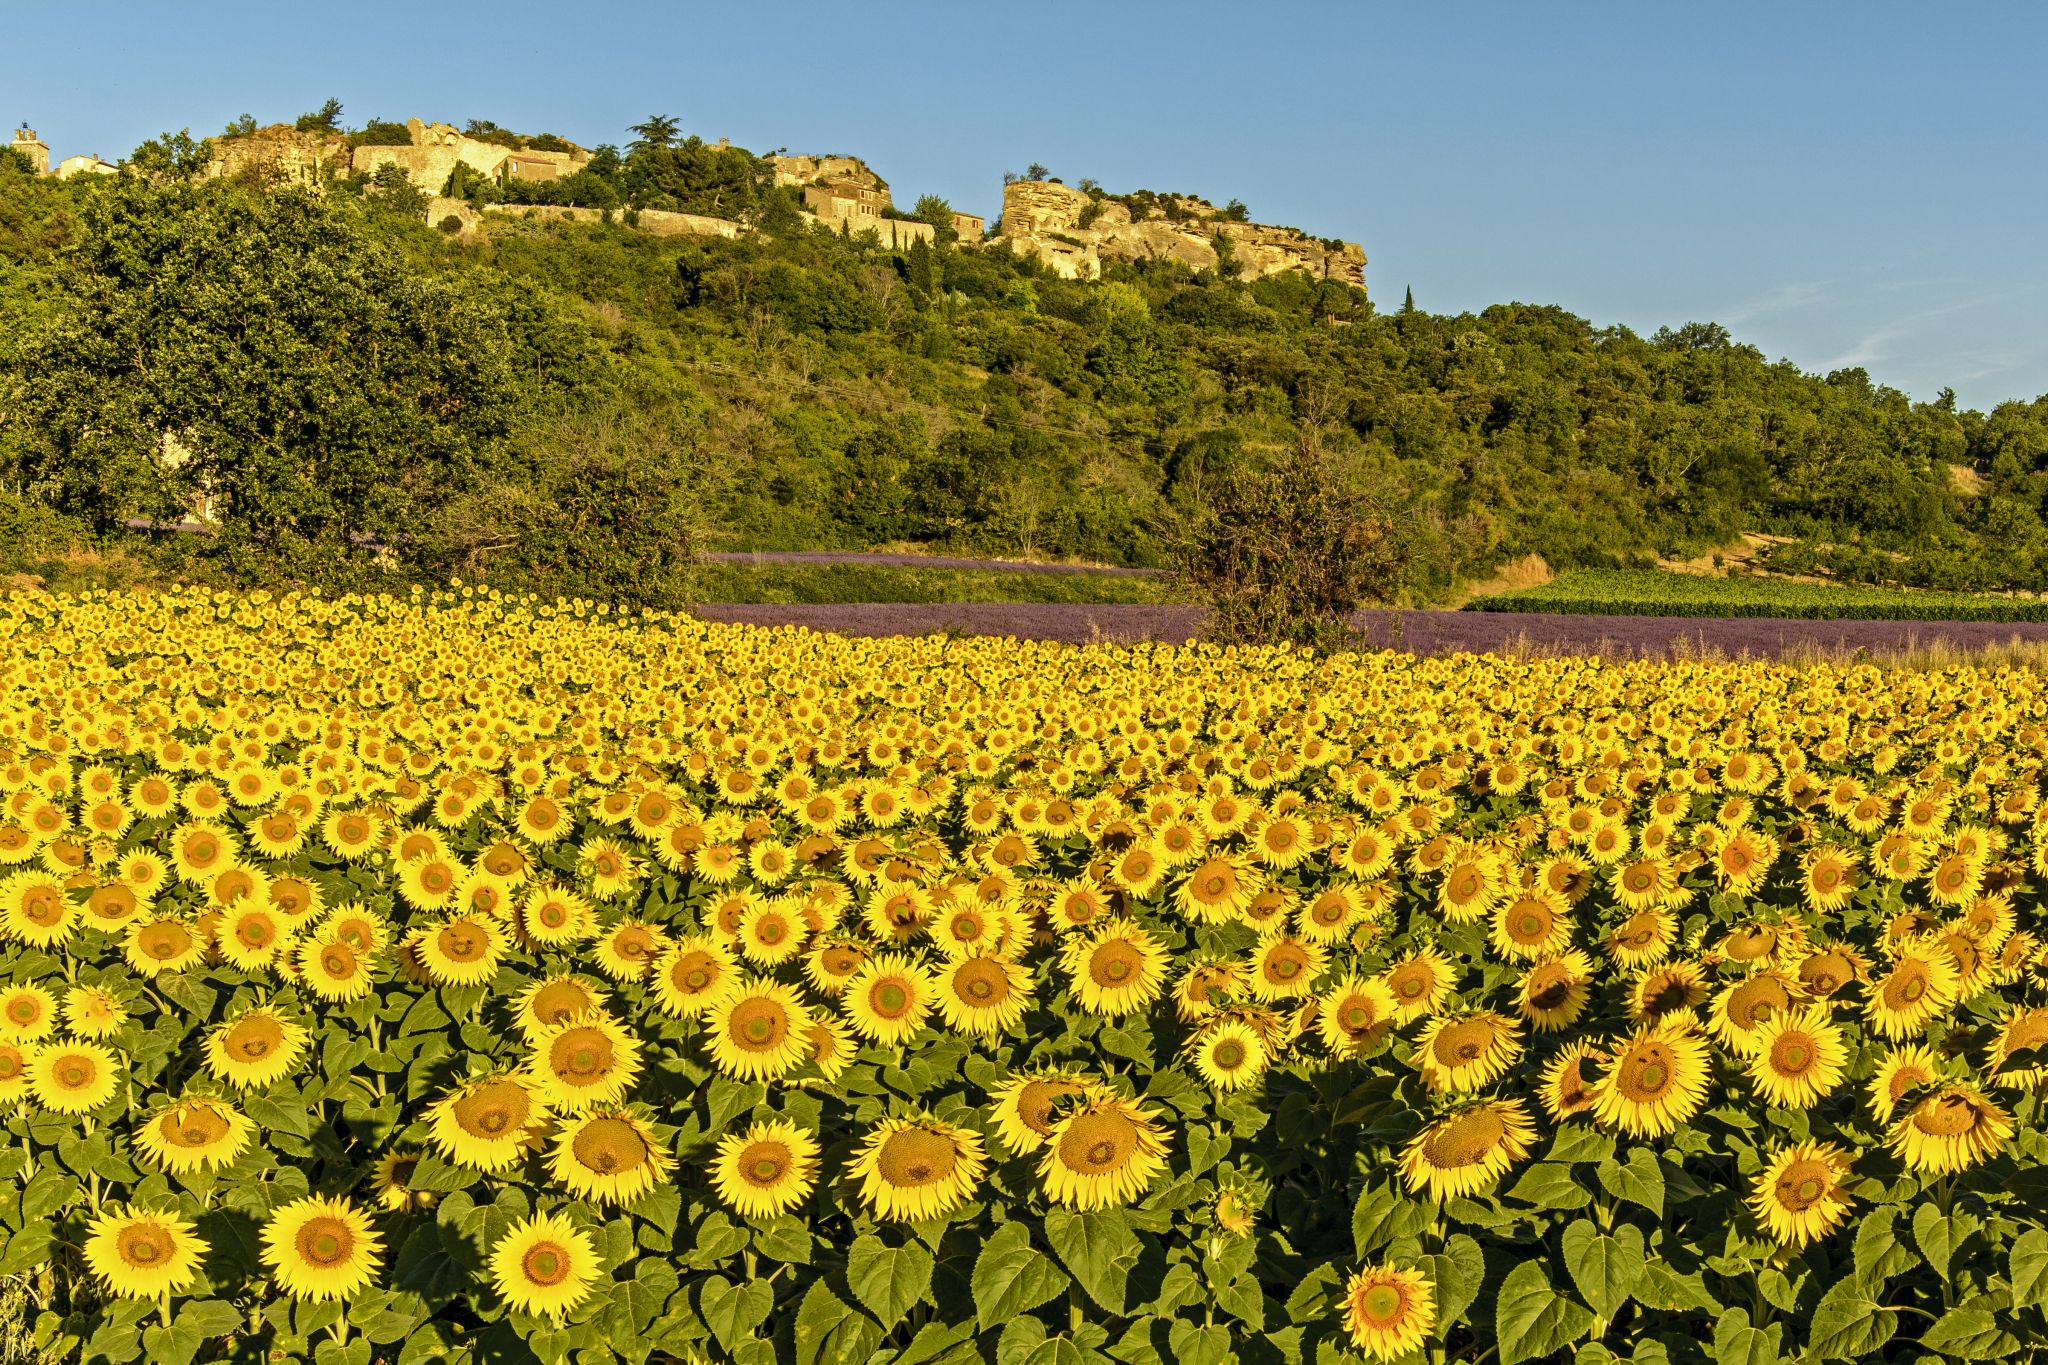 The Sunflower Fields Of Saignon, France